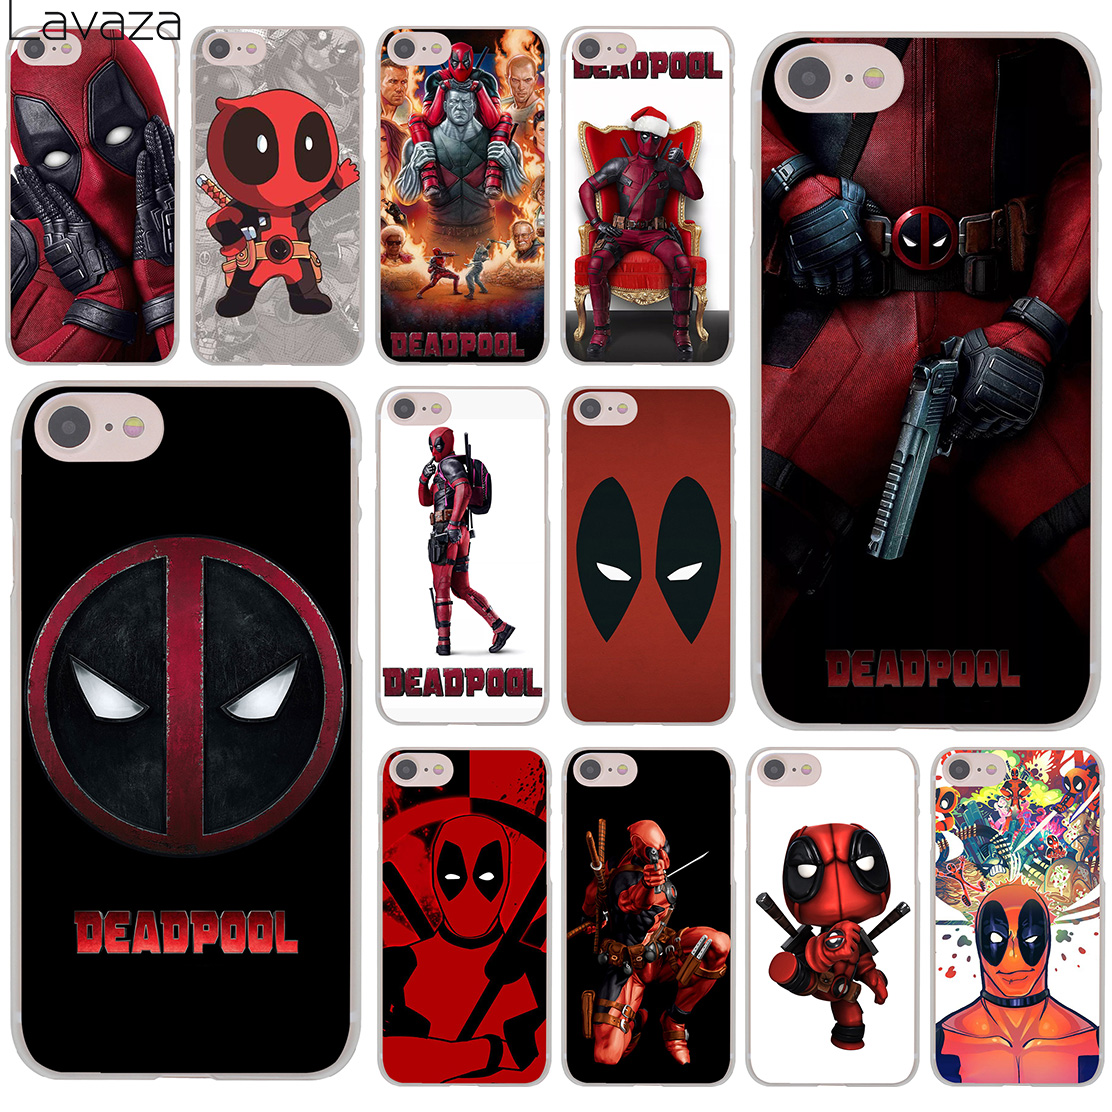 Deadpool Marvel Wade Winston Wilson Hard Transparent Case Cover for iPhone 7 7 Plus 6 6S Plus 5 5S SE 5C 4 4S marvel glass iphone case